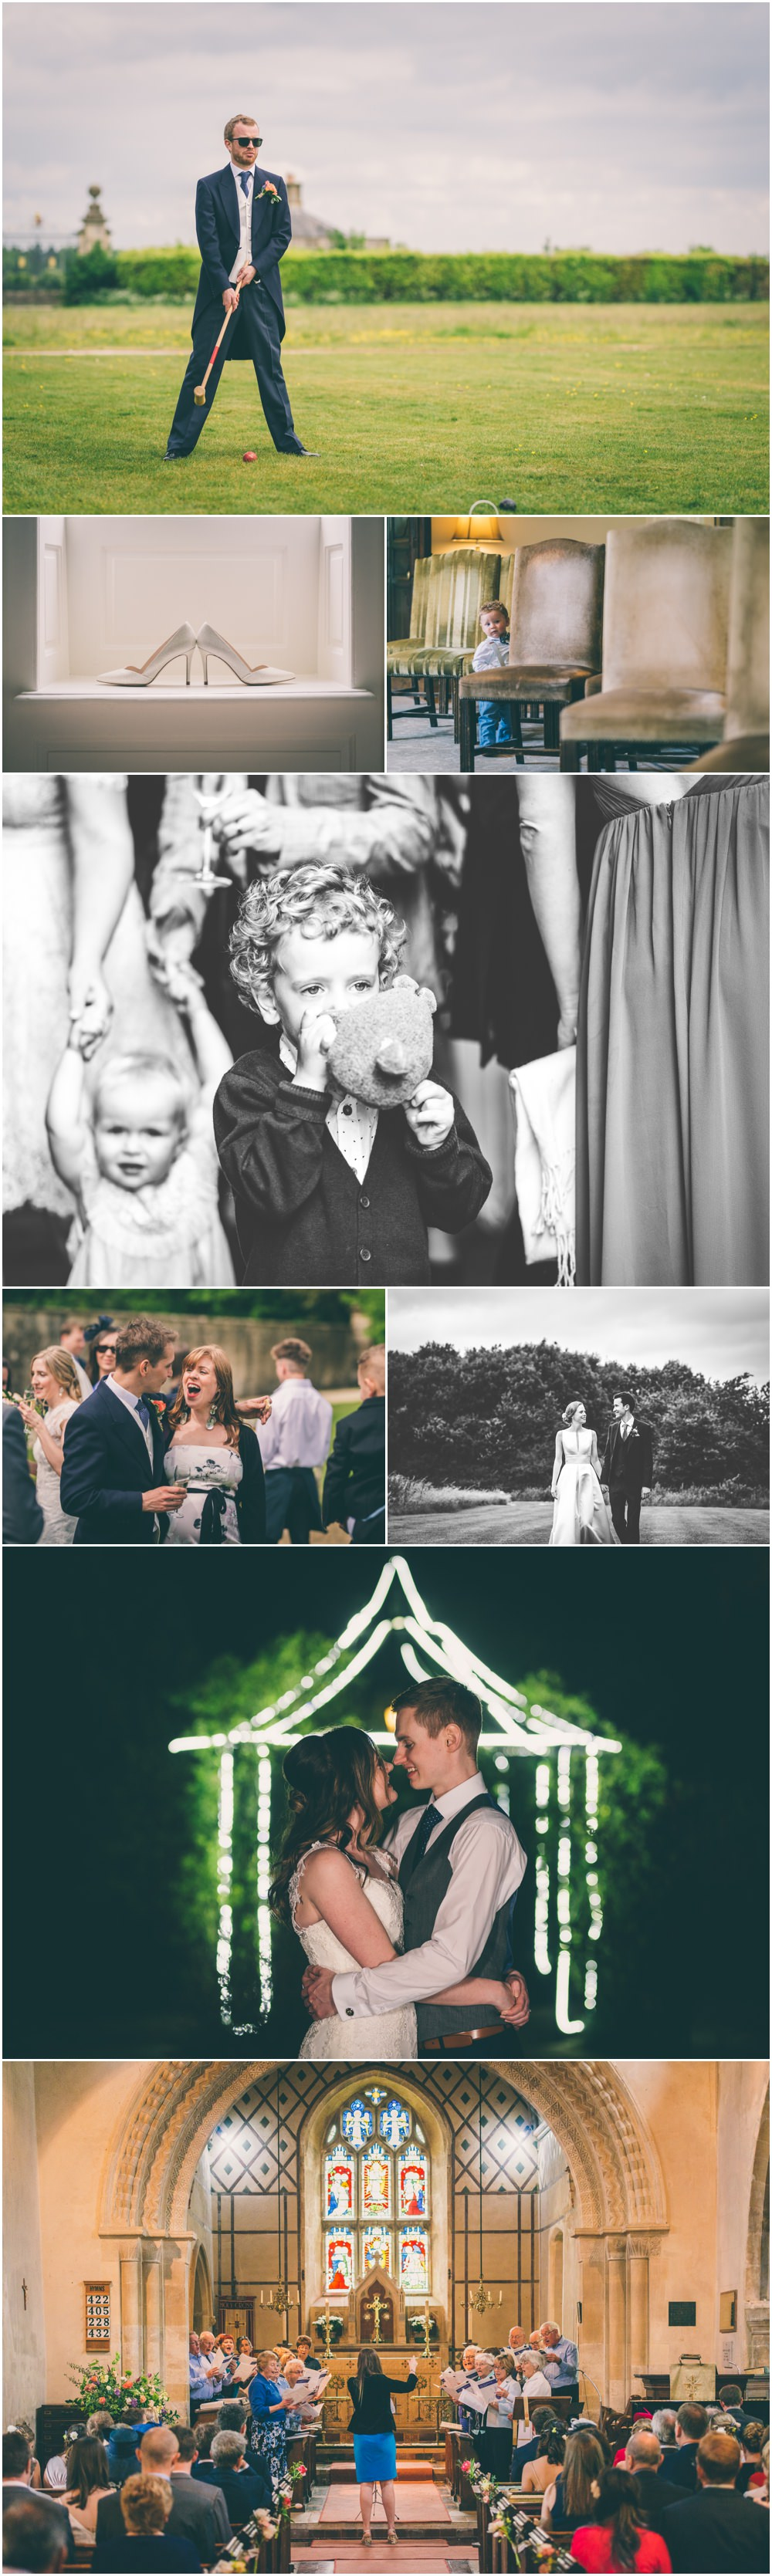 Rob Tarren Wedding Photography